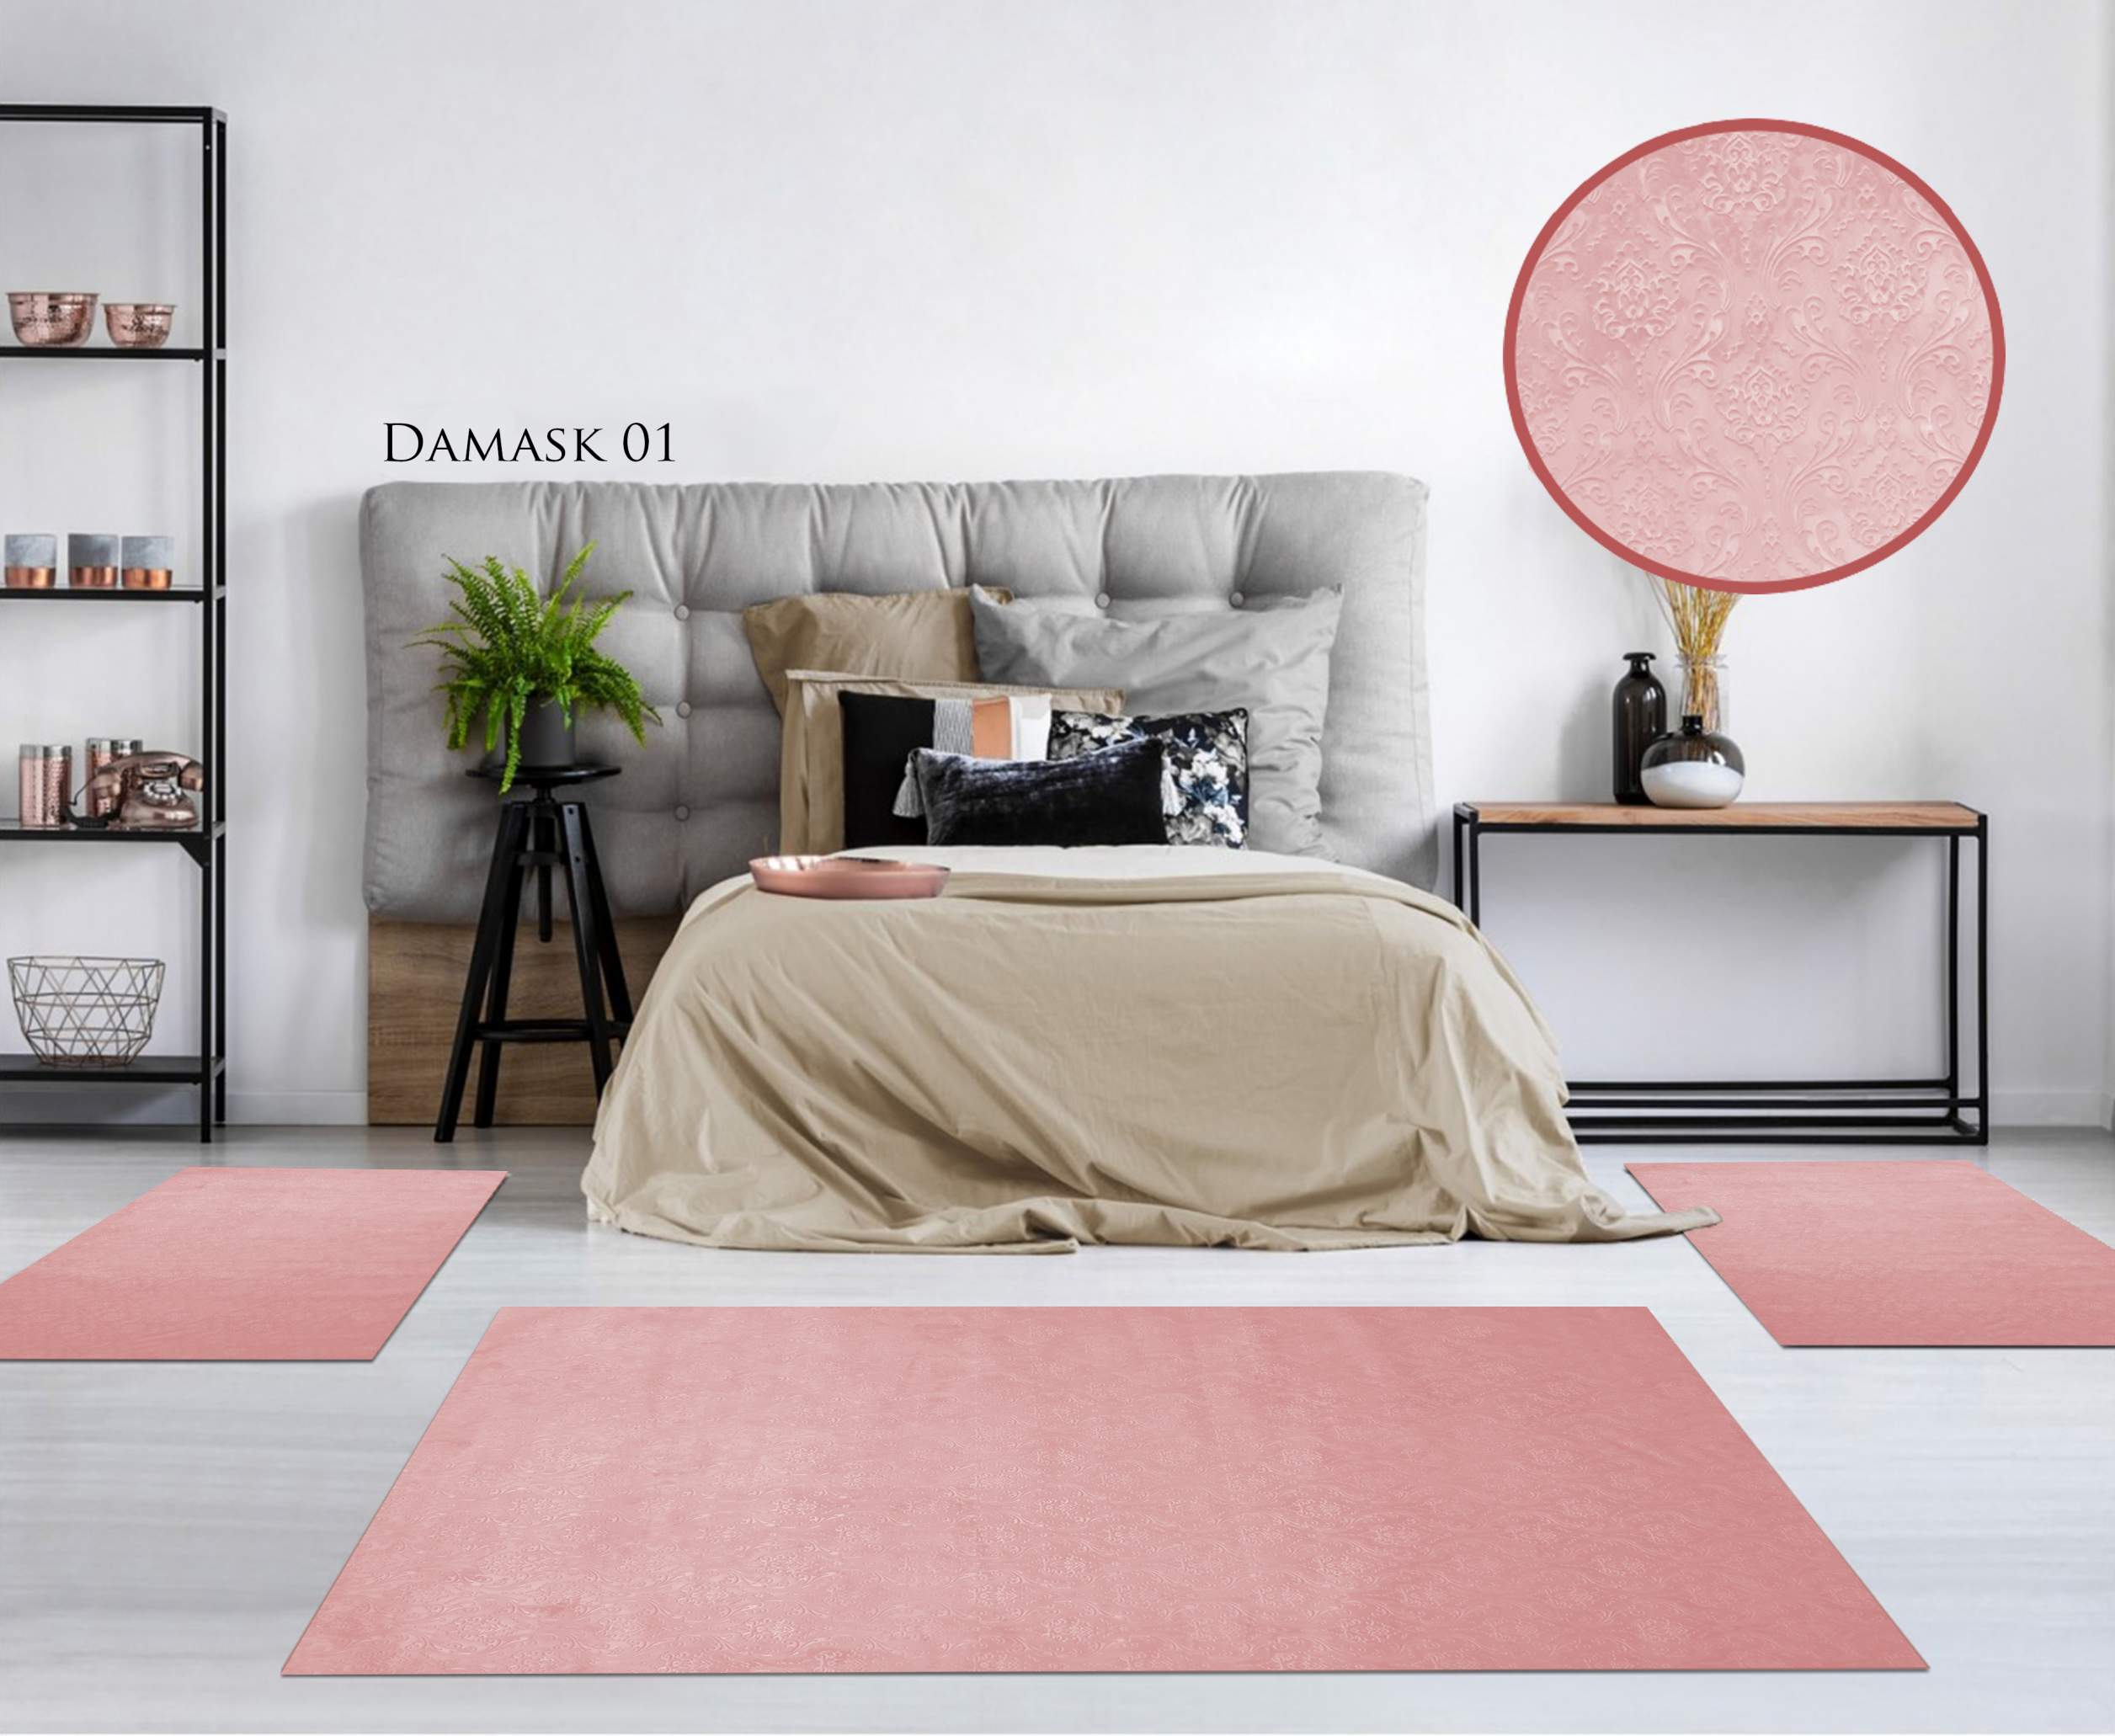 TAPIS CHAMBRE GAUFRE DAMASK ROSE